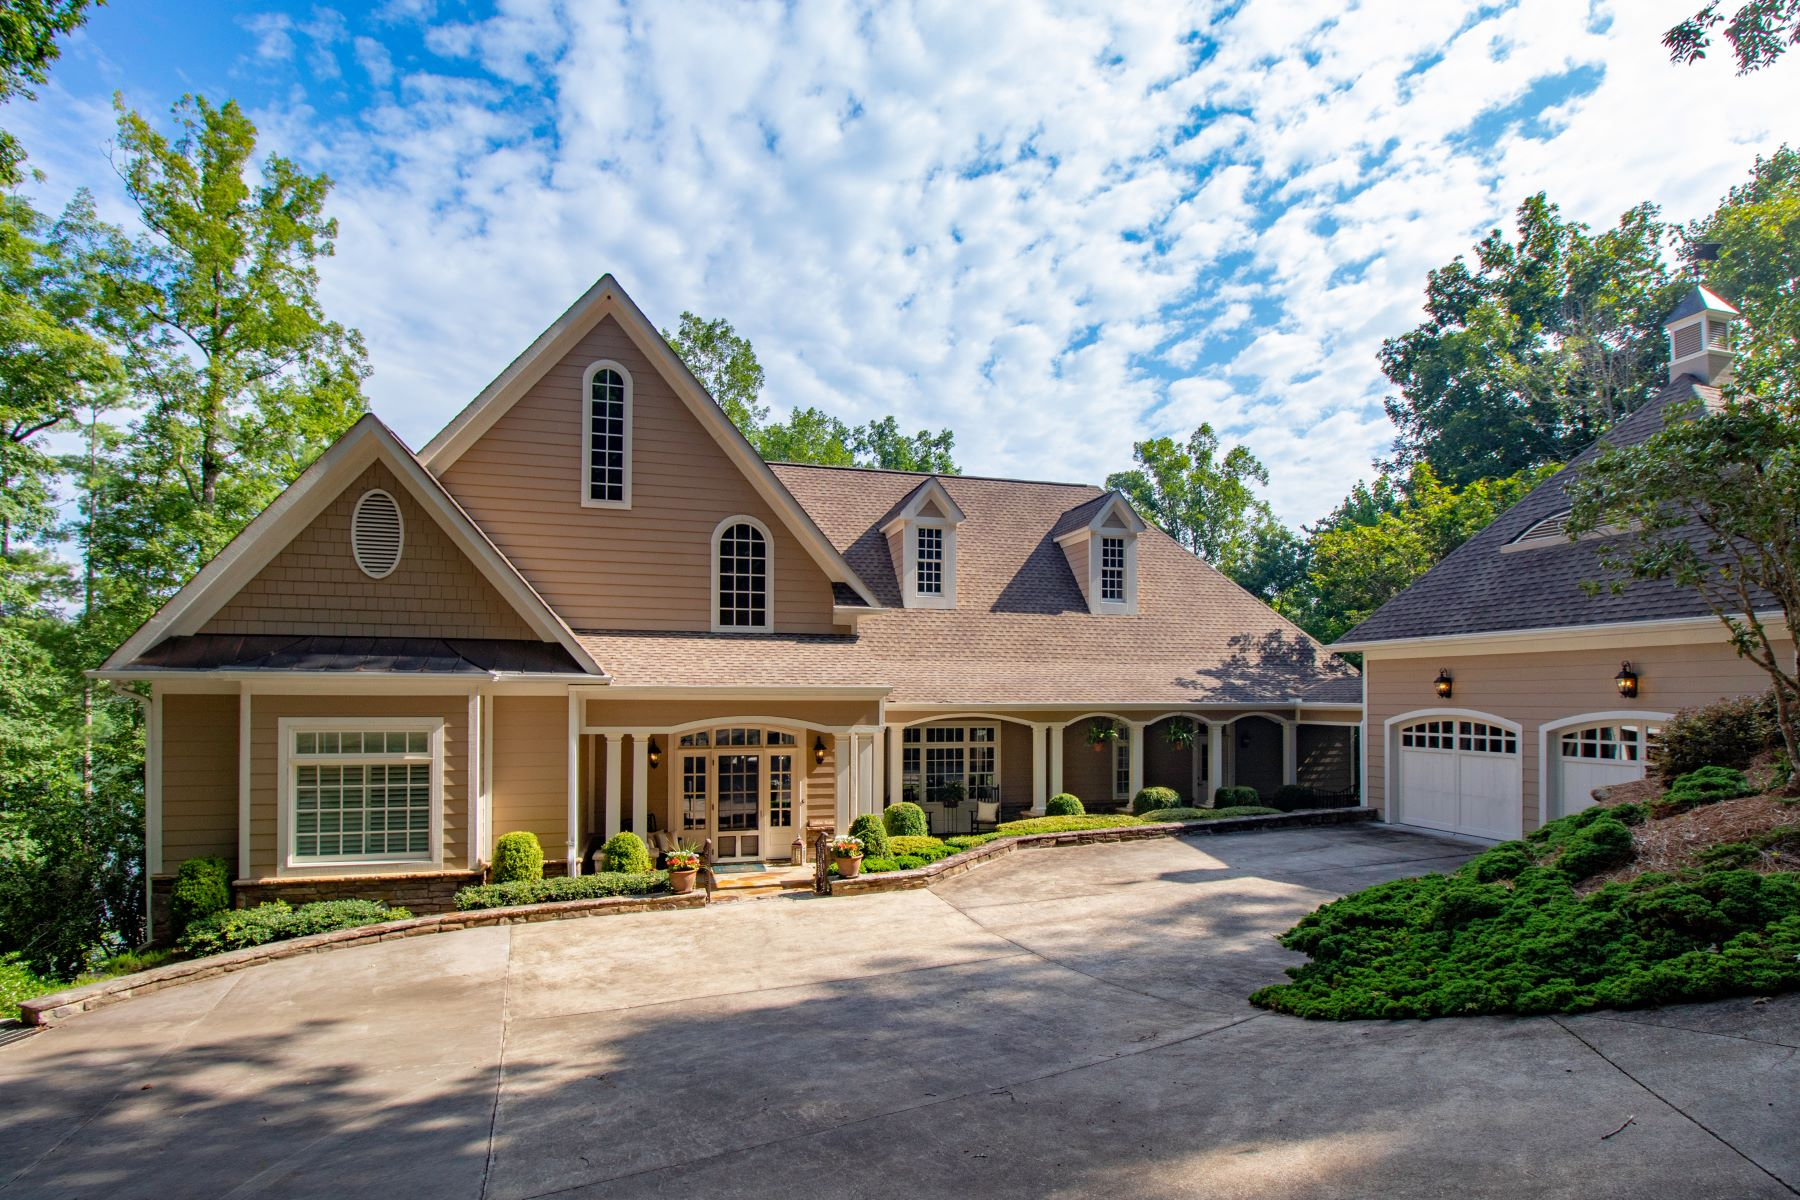 Single Family Homes für Verkauf beim Completed updated lake front home in The Reserve at Lake Keowee. 117 Burwood Court, Sunset, South Carolina 29685 Vereinigte Staaten